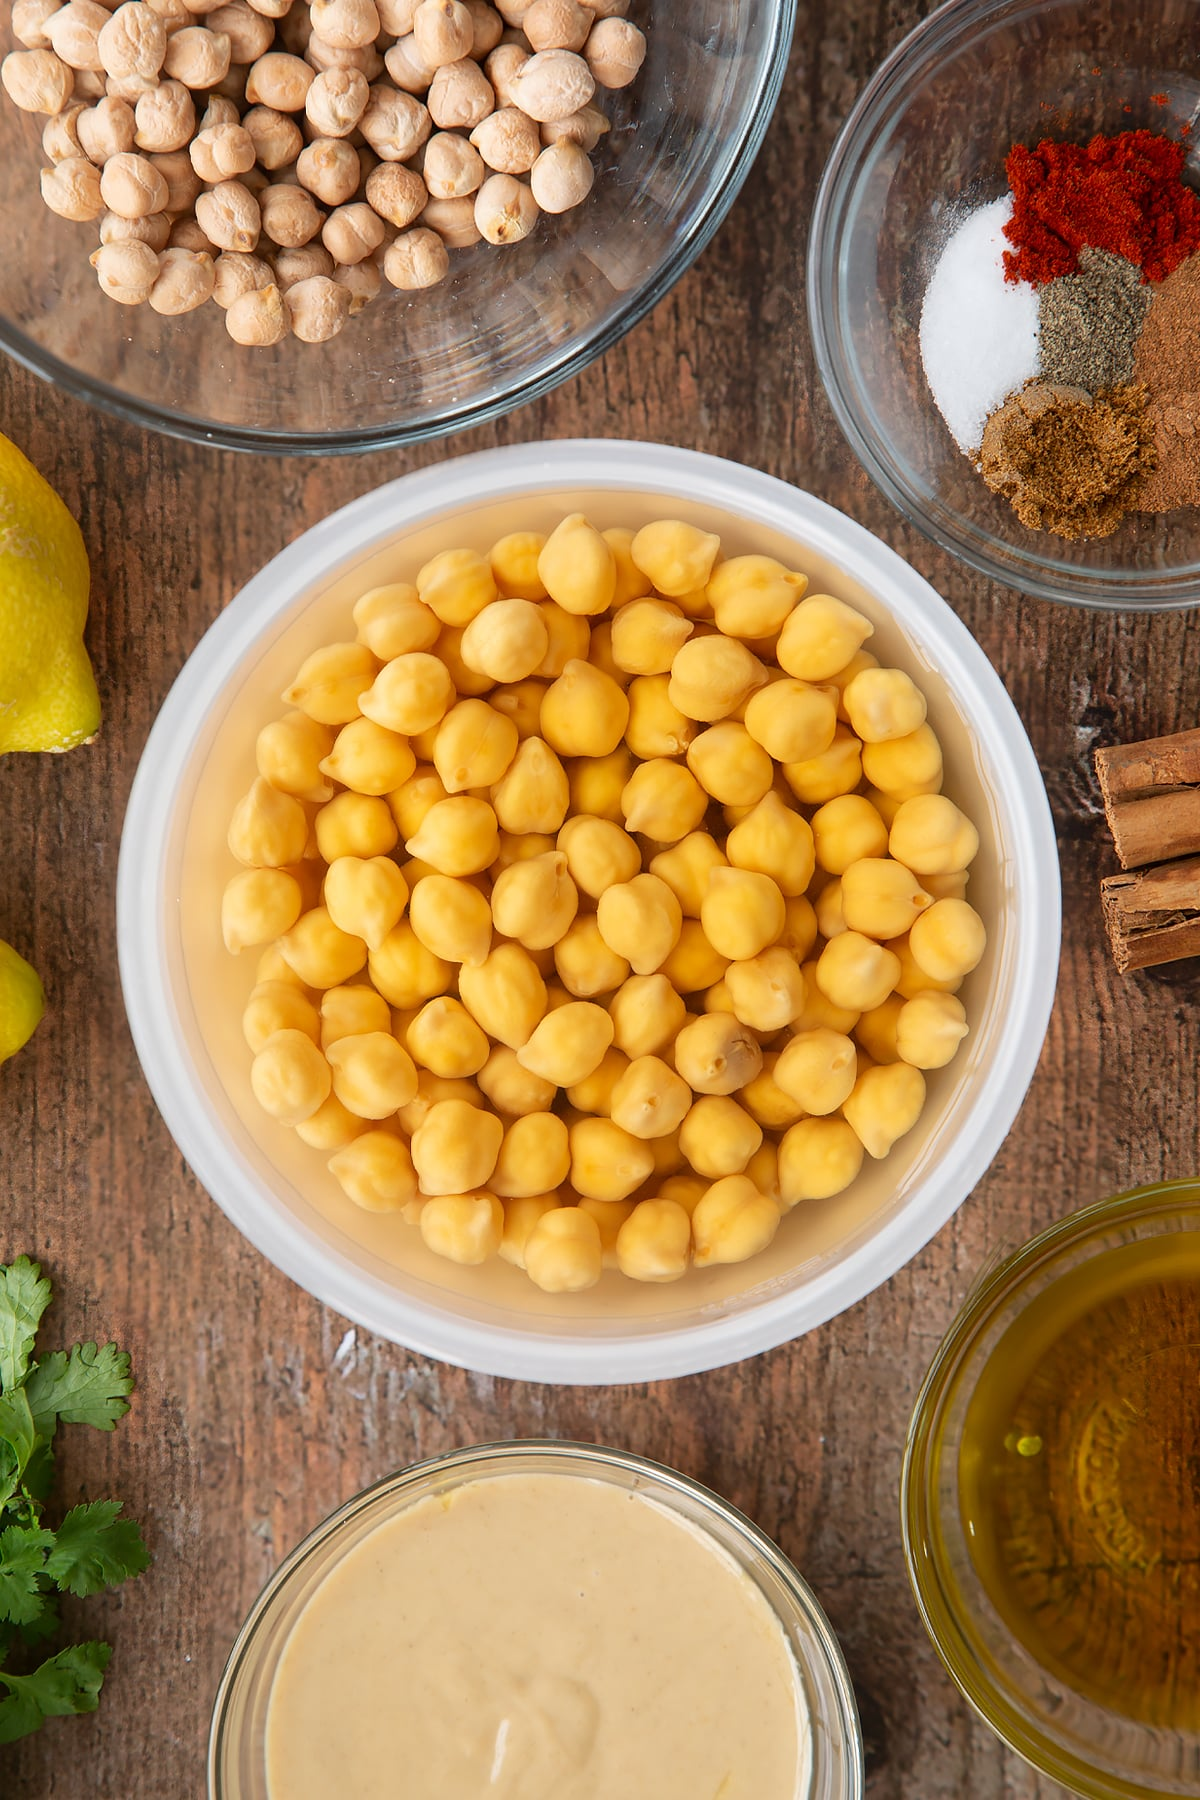 Soaked chickpeas in water in a plastic bowl. Ingredients to make cinnamon hummus surround the bowl.